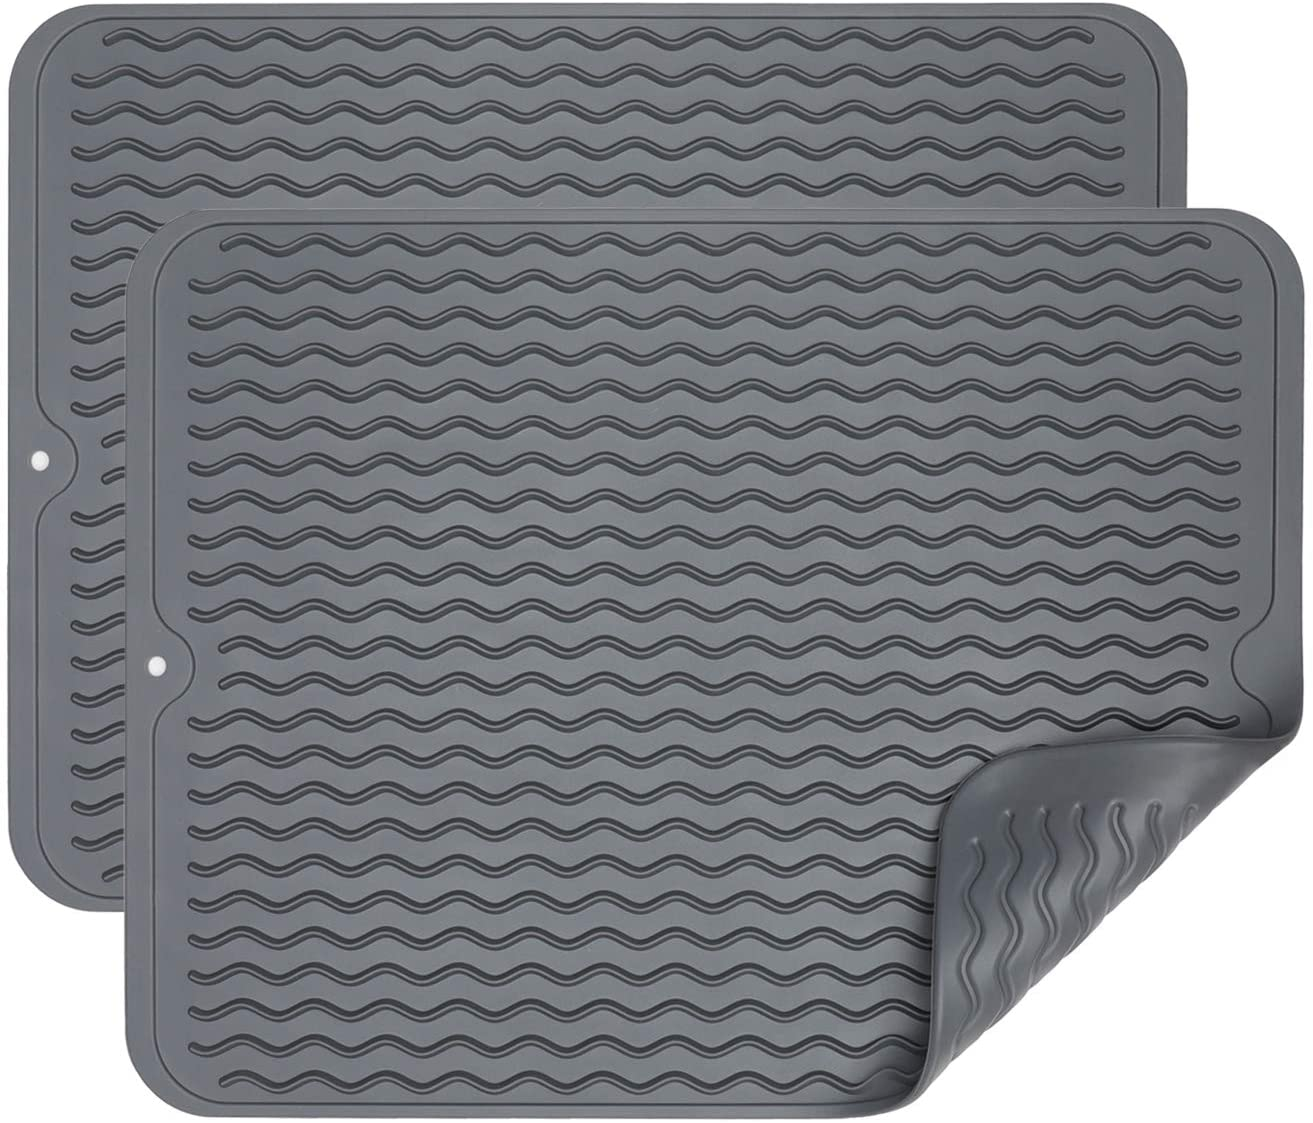 Dish Drying Mat for Kitchen Counter Small Silicone Drying Mat 16 x 12 Inch Easy Clean Dish Mat Grey 2 Pack